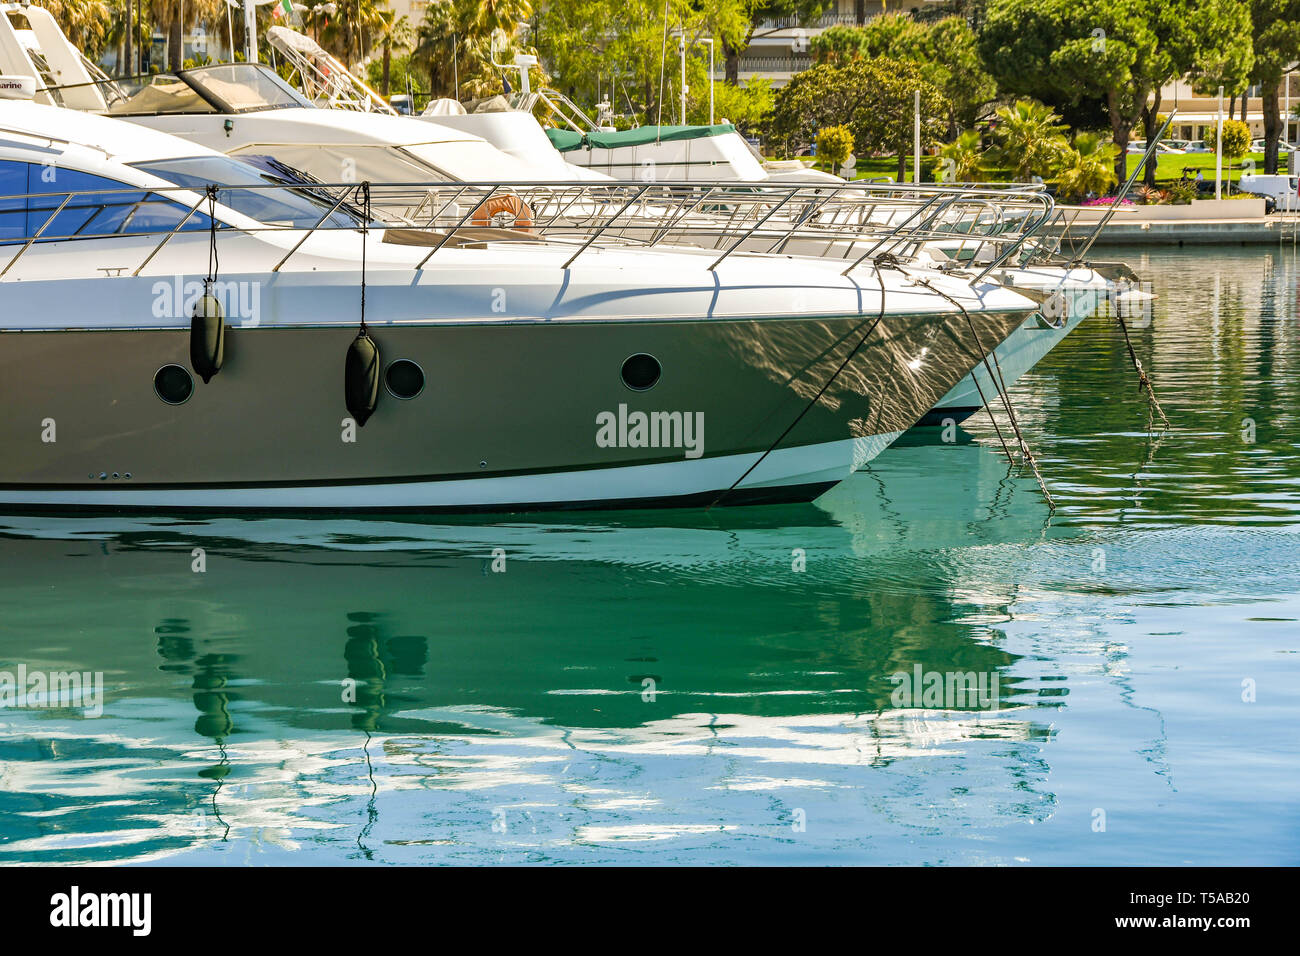 CANNES, FRANCE - APRIL 2019: Luxury motor cruisers in the Port Pierre Canto marina in Cannes. Stock Photo